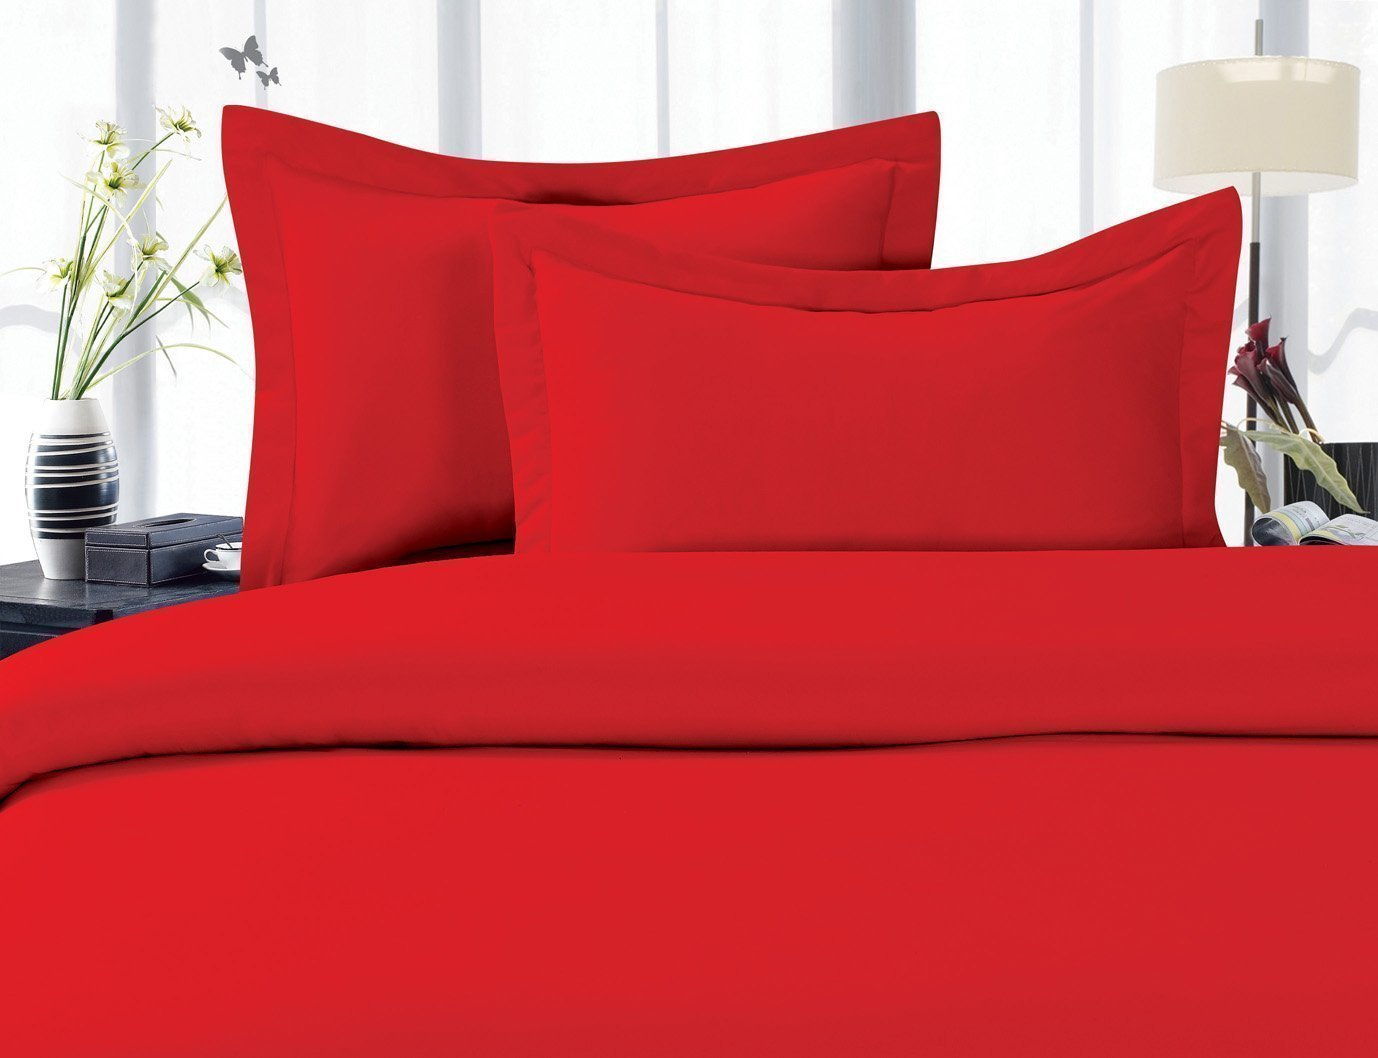 3-Piece Bed Sheet set, Deep Pocket, HypoAllergenic - Twin Red